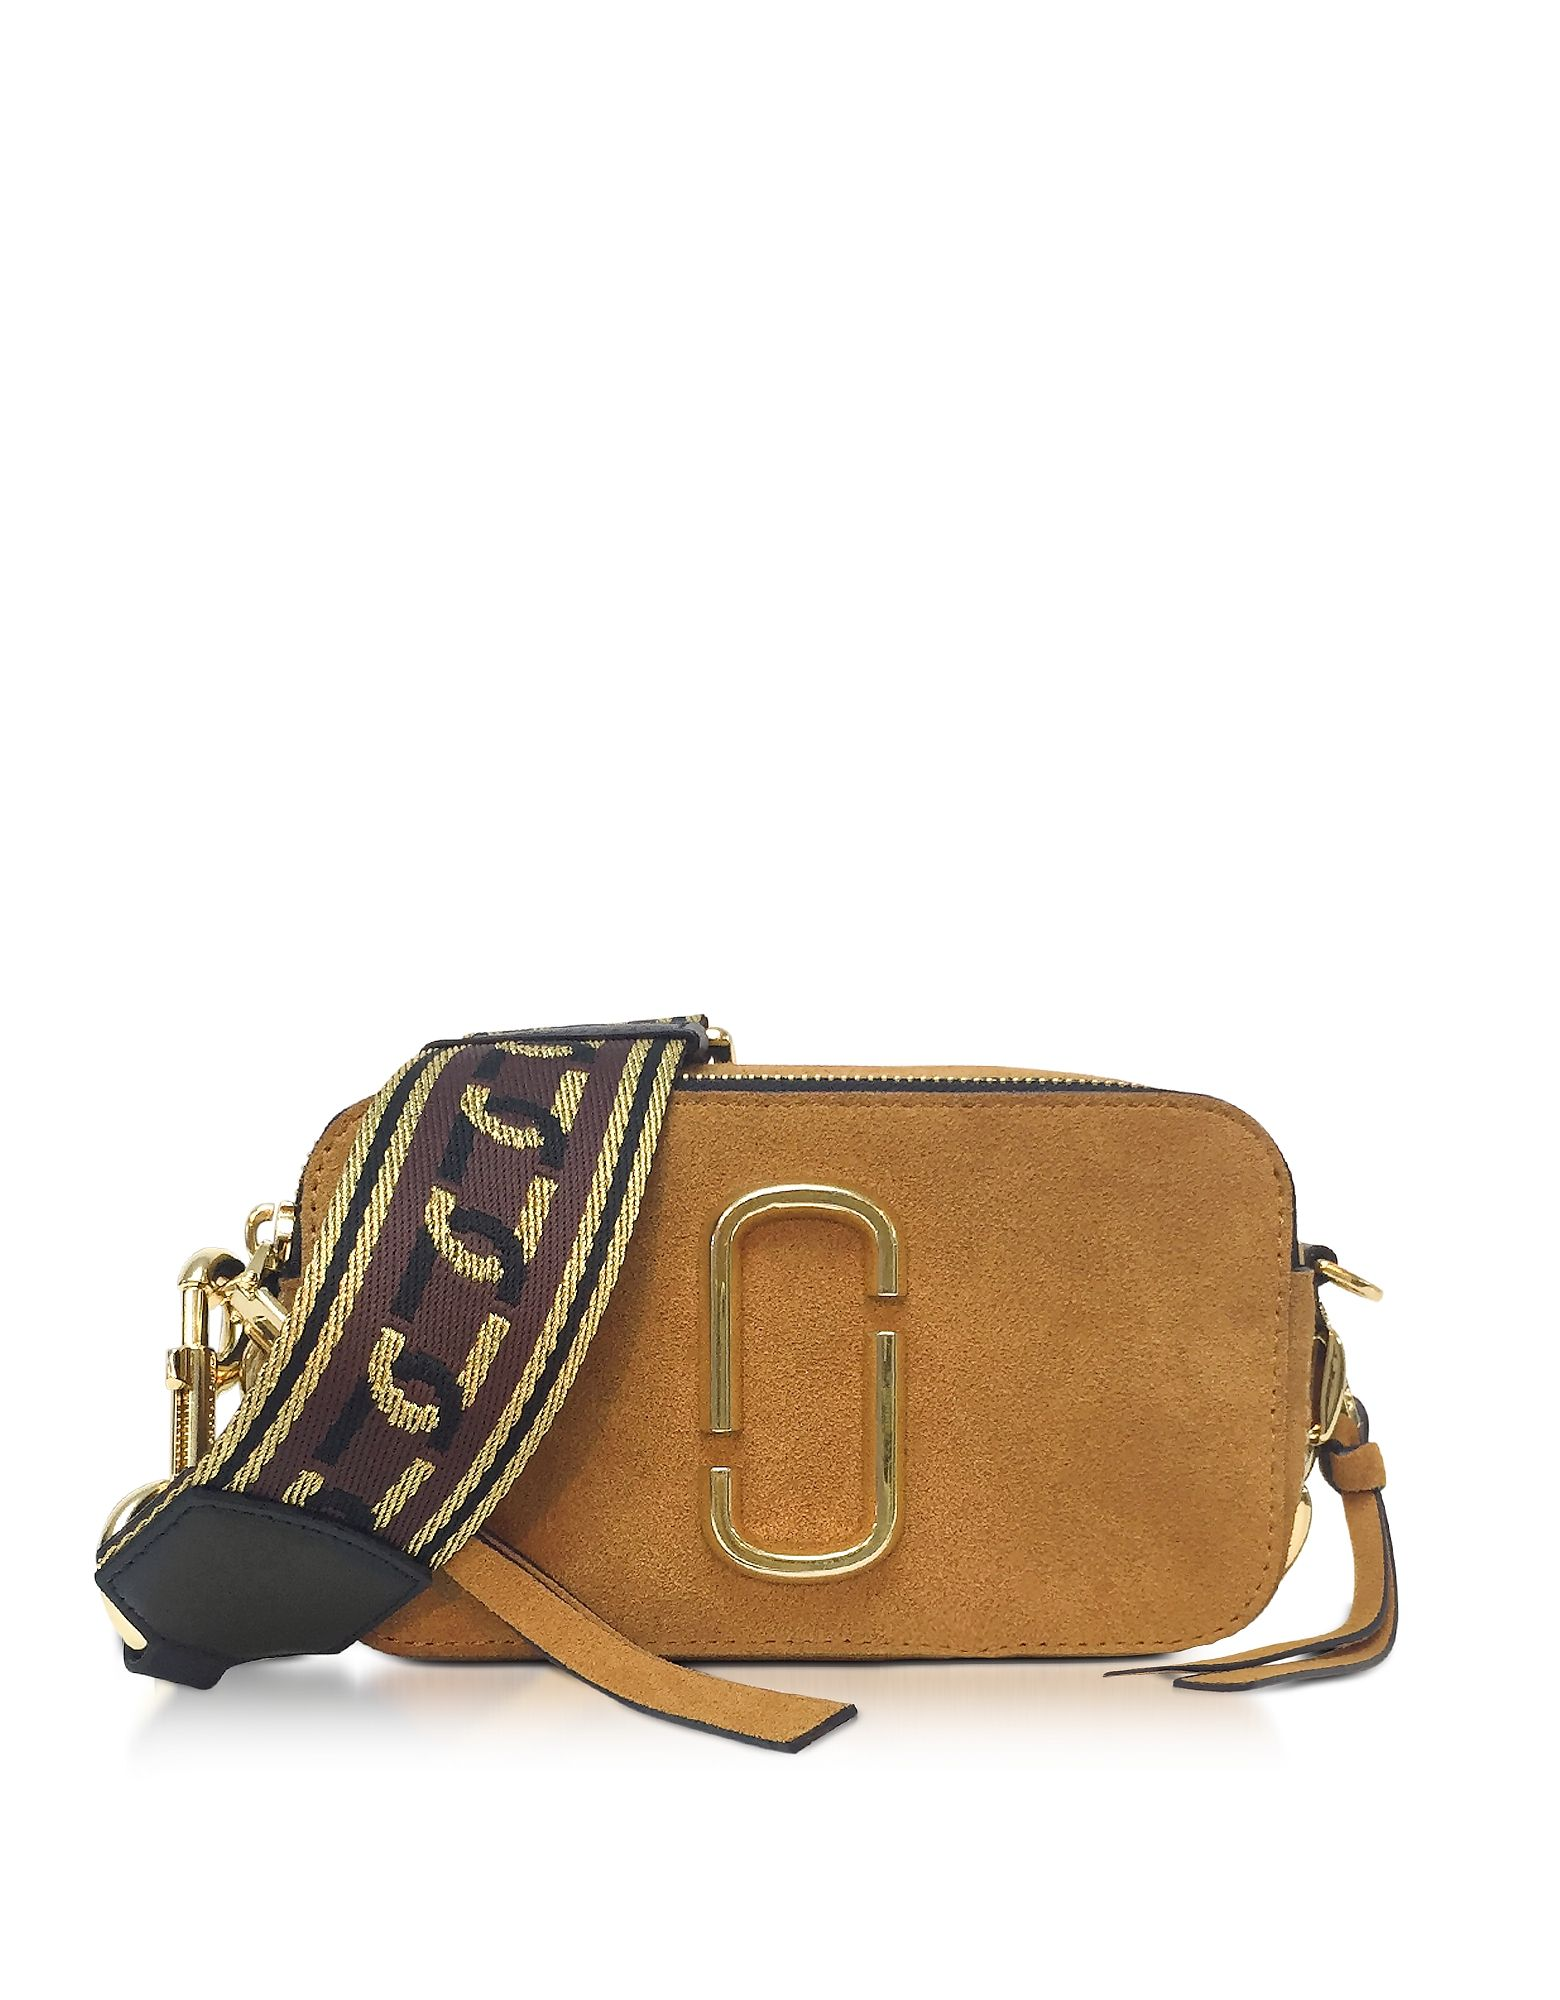 a01392f0ea6f MARC JACOBS MUSTARD YELLOW CHAIN SNAPSHOT SMALL CAMERA BAG.  marcjacobs   bags